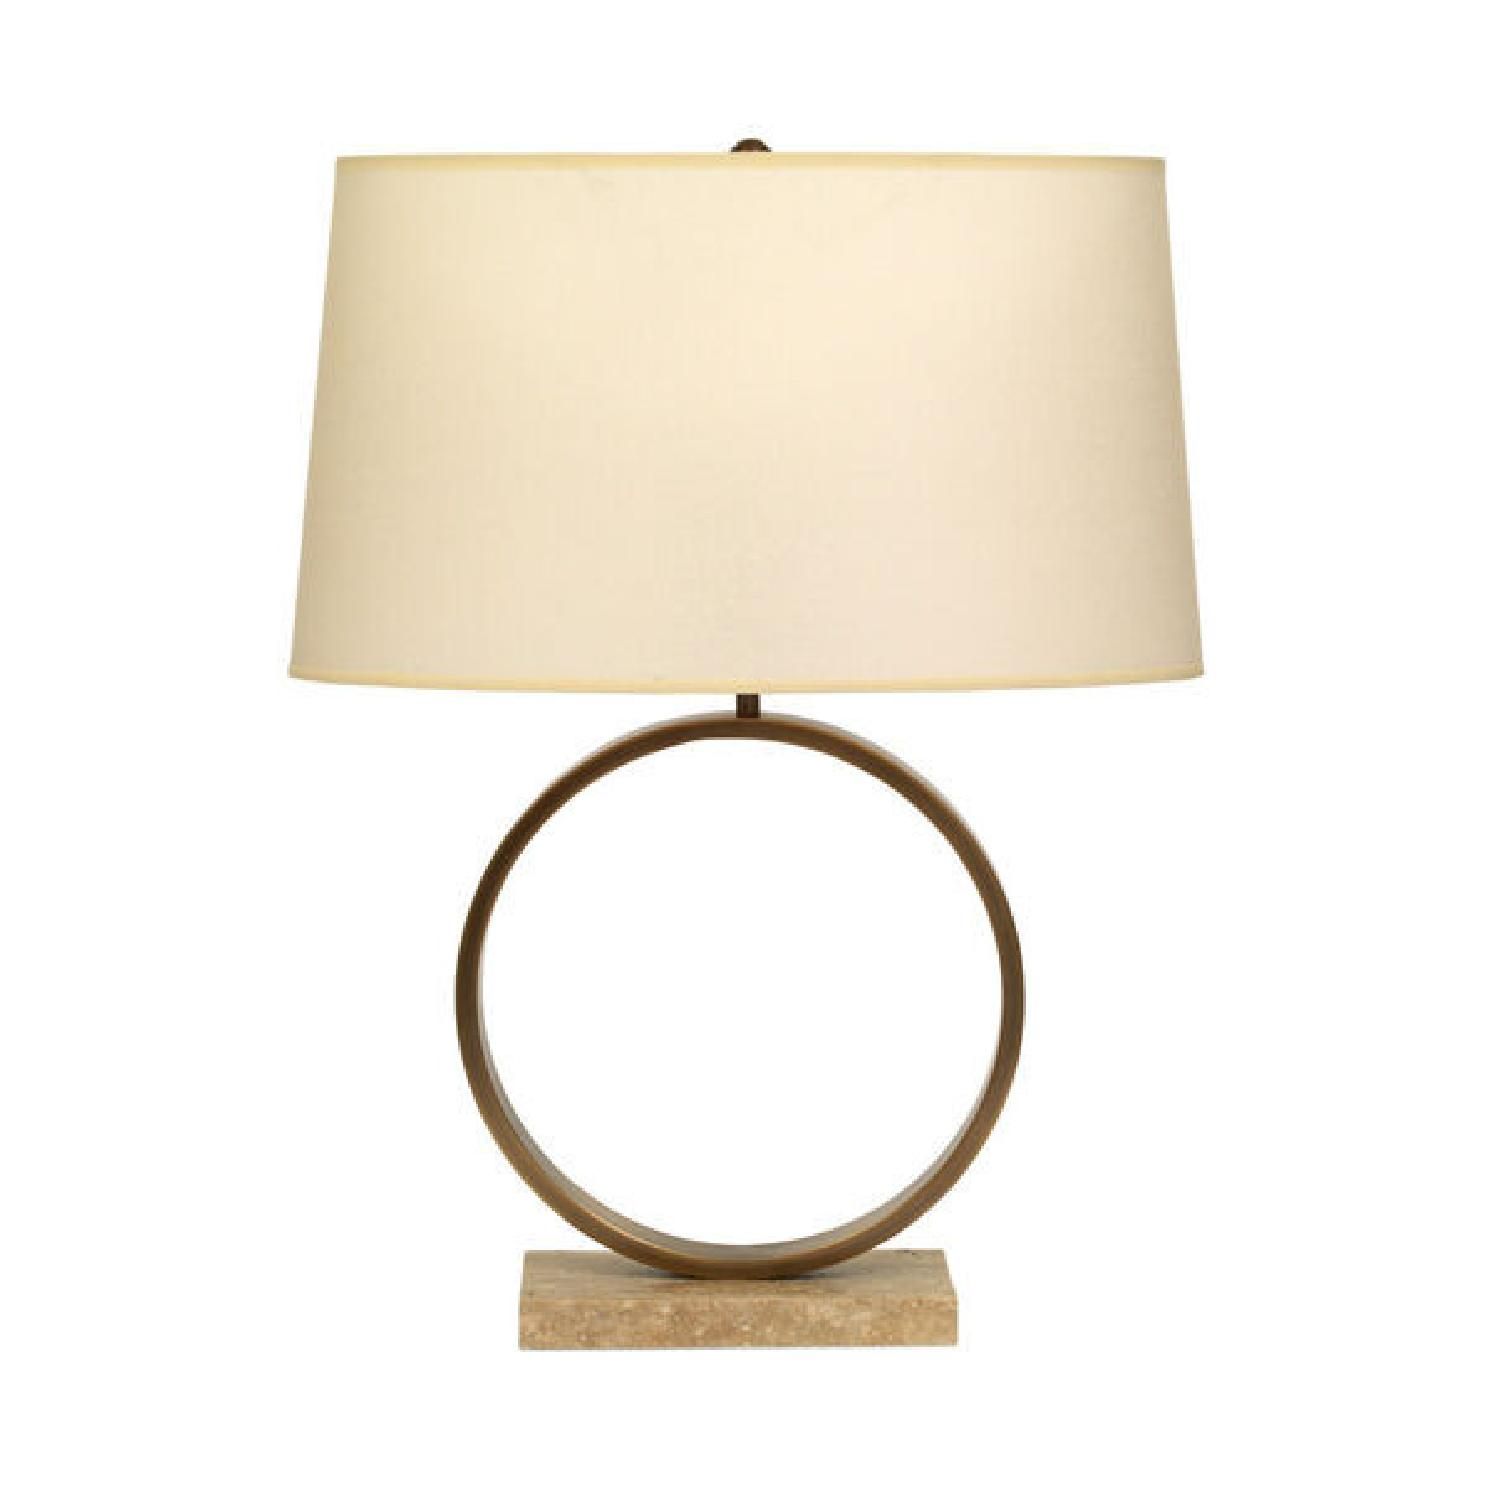 Mitchell Gold + Bob Williams Marco Table Lamp - image-5